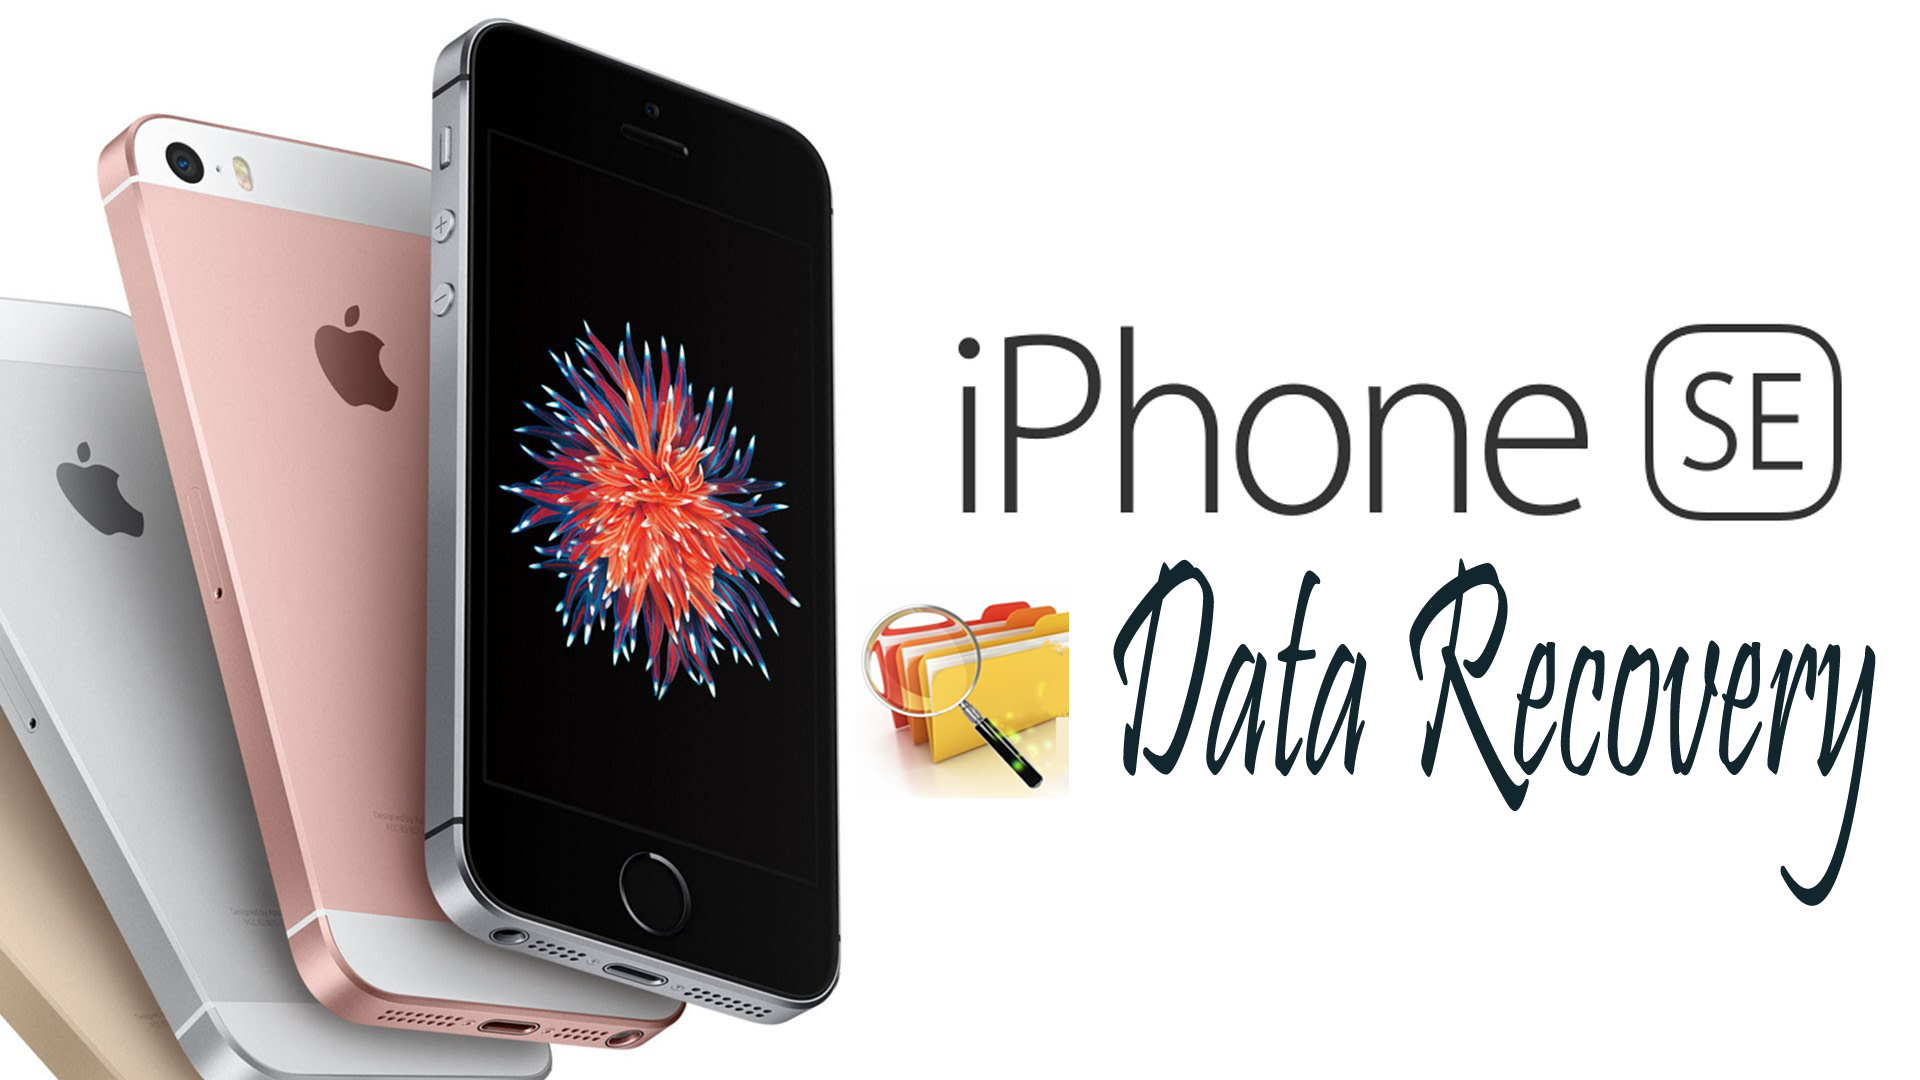 iPhone SE Data Recovery –Recover Lost/Deleted iPhone SE Data Easily